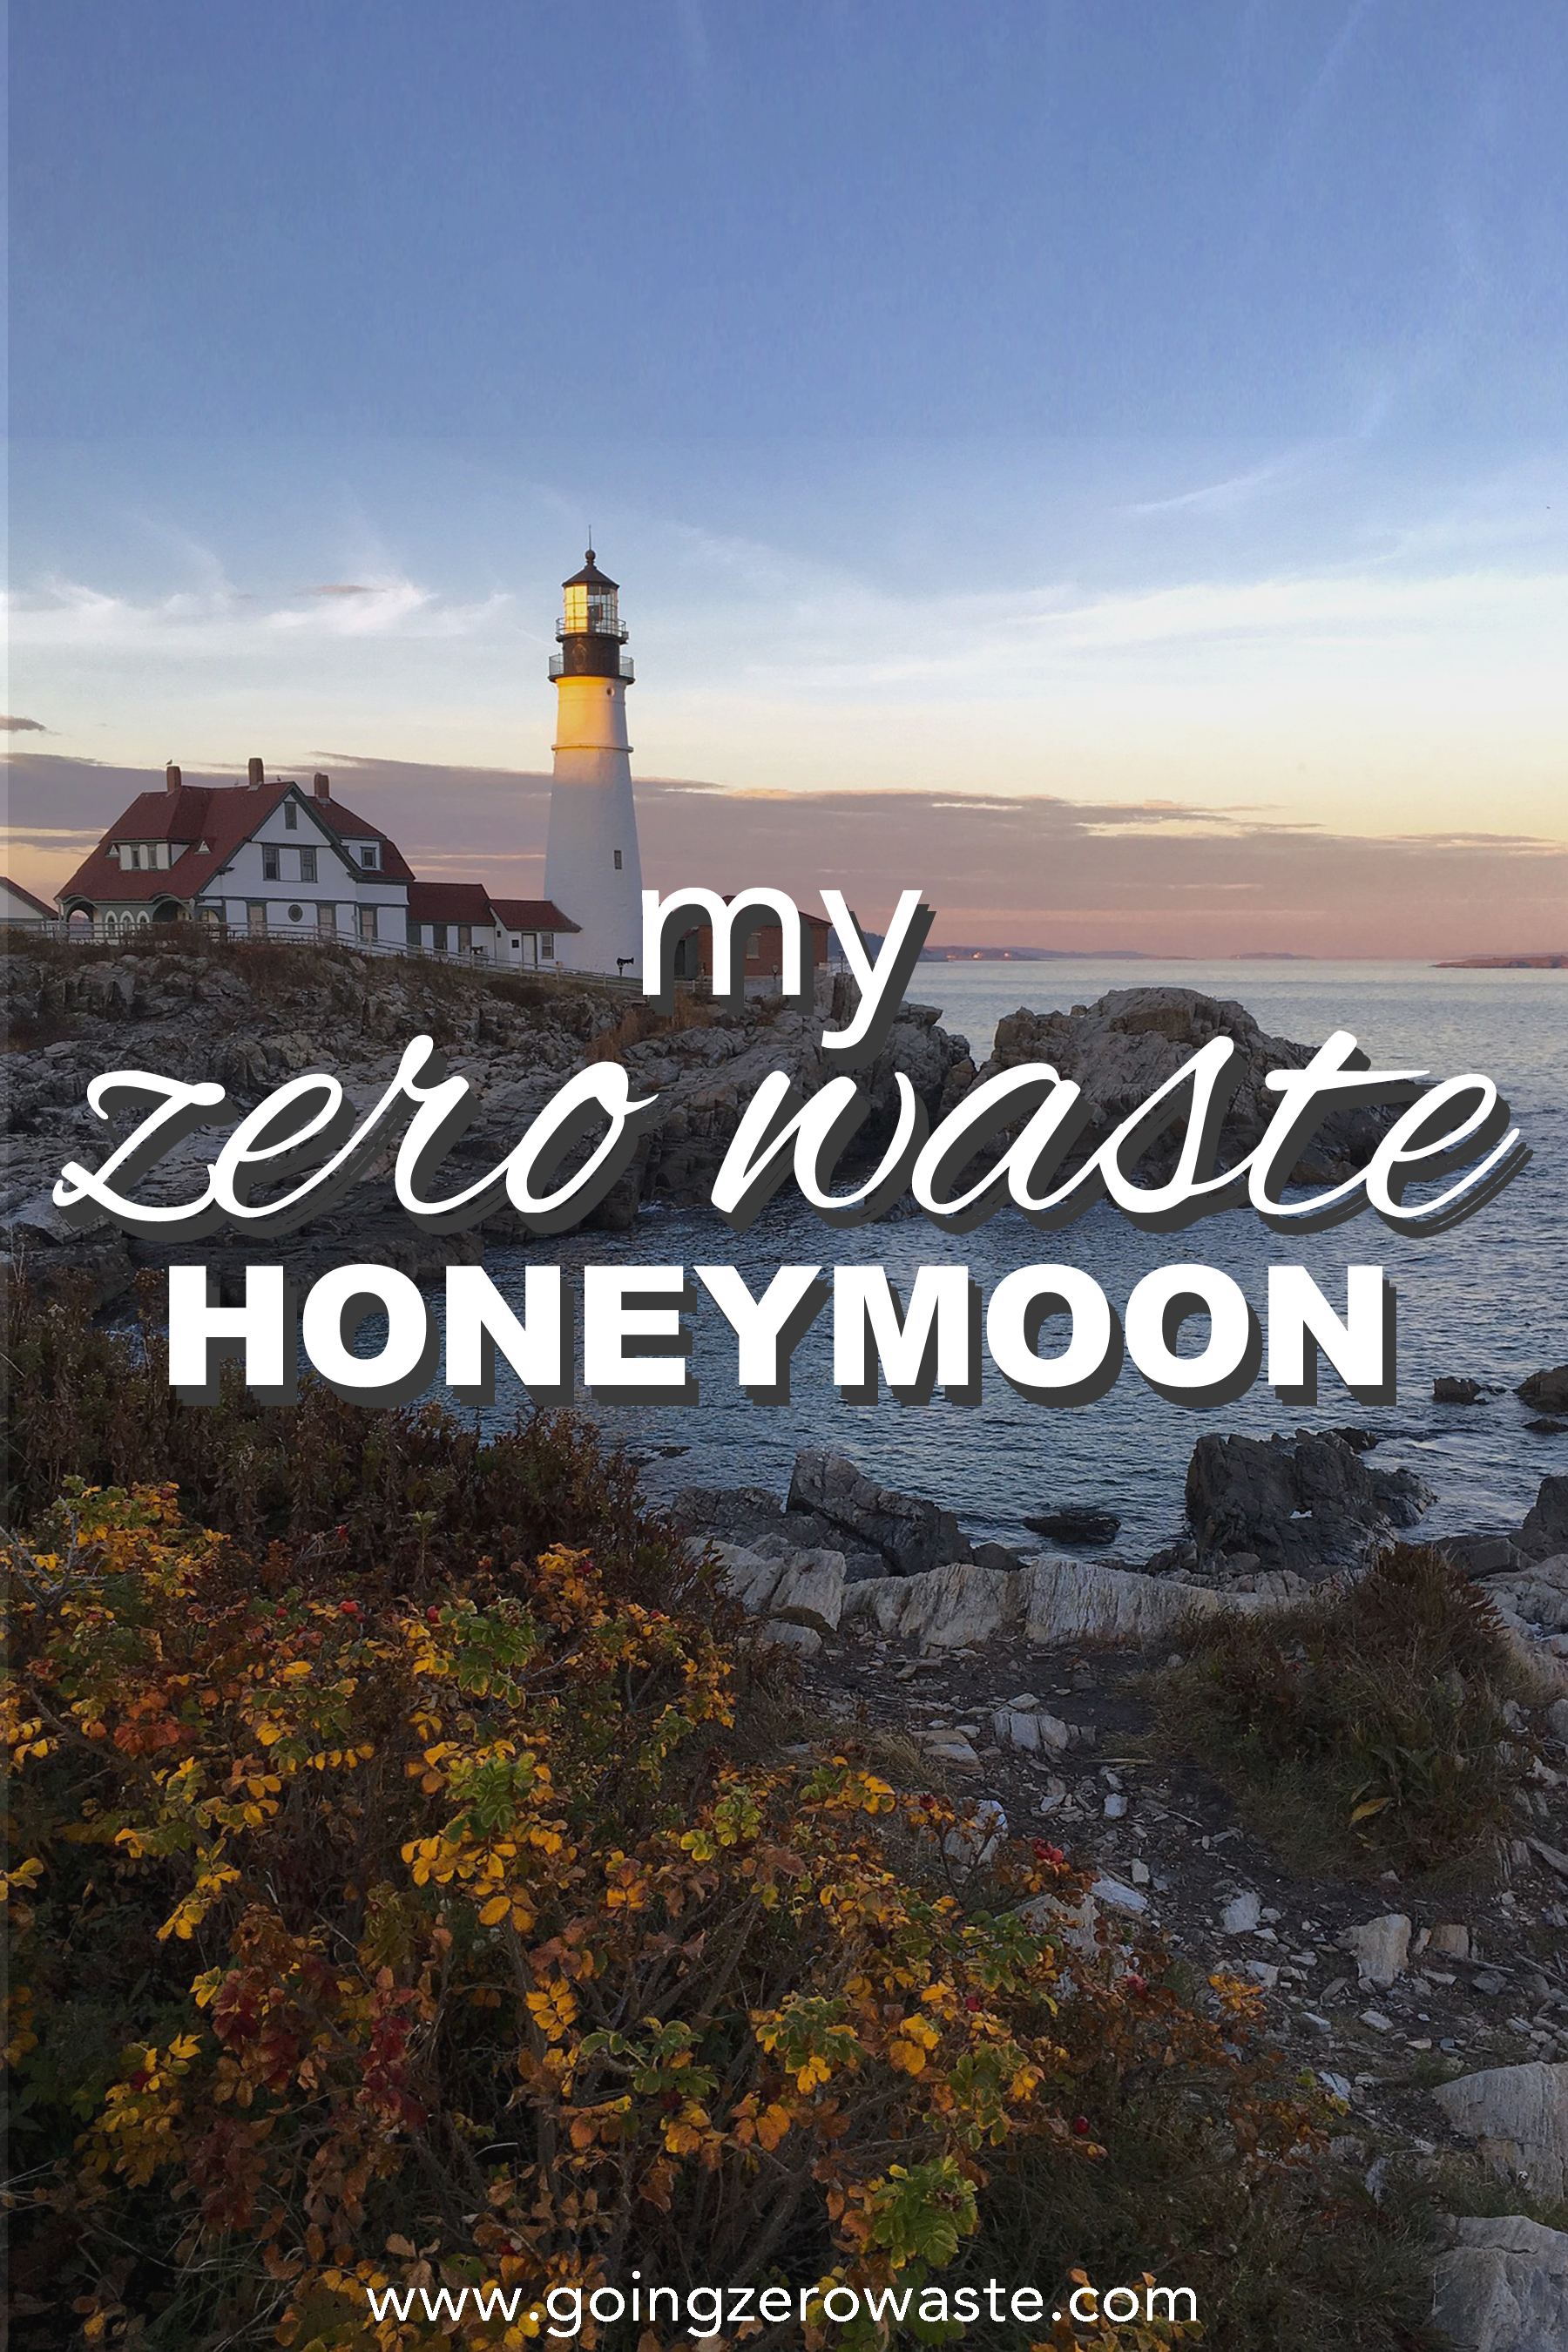 My zero waste honeymoon from www.goingzerowaste.com